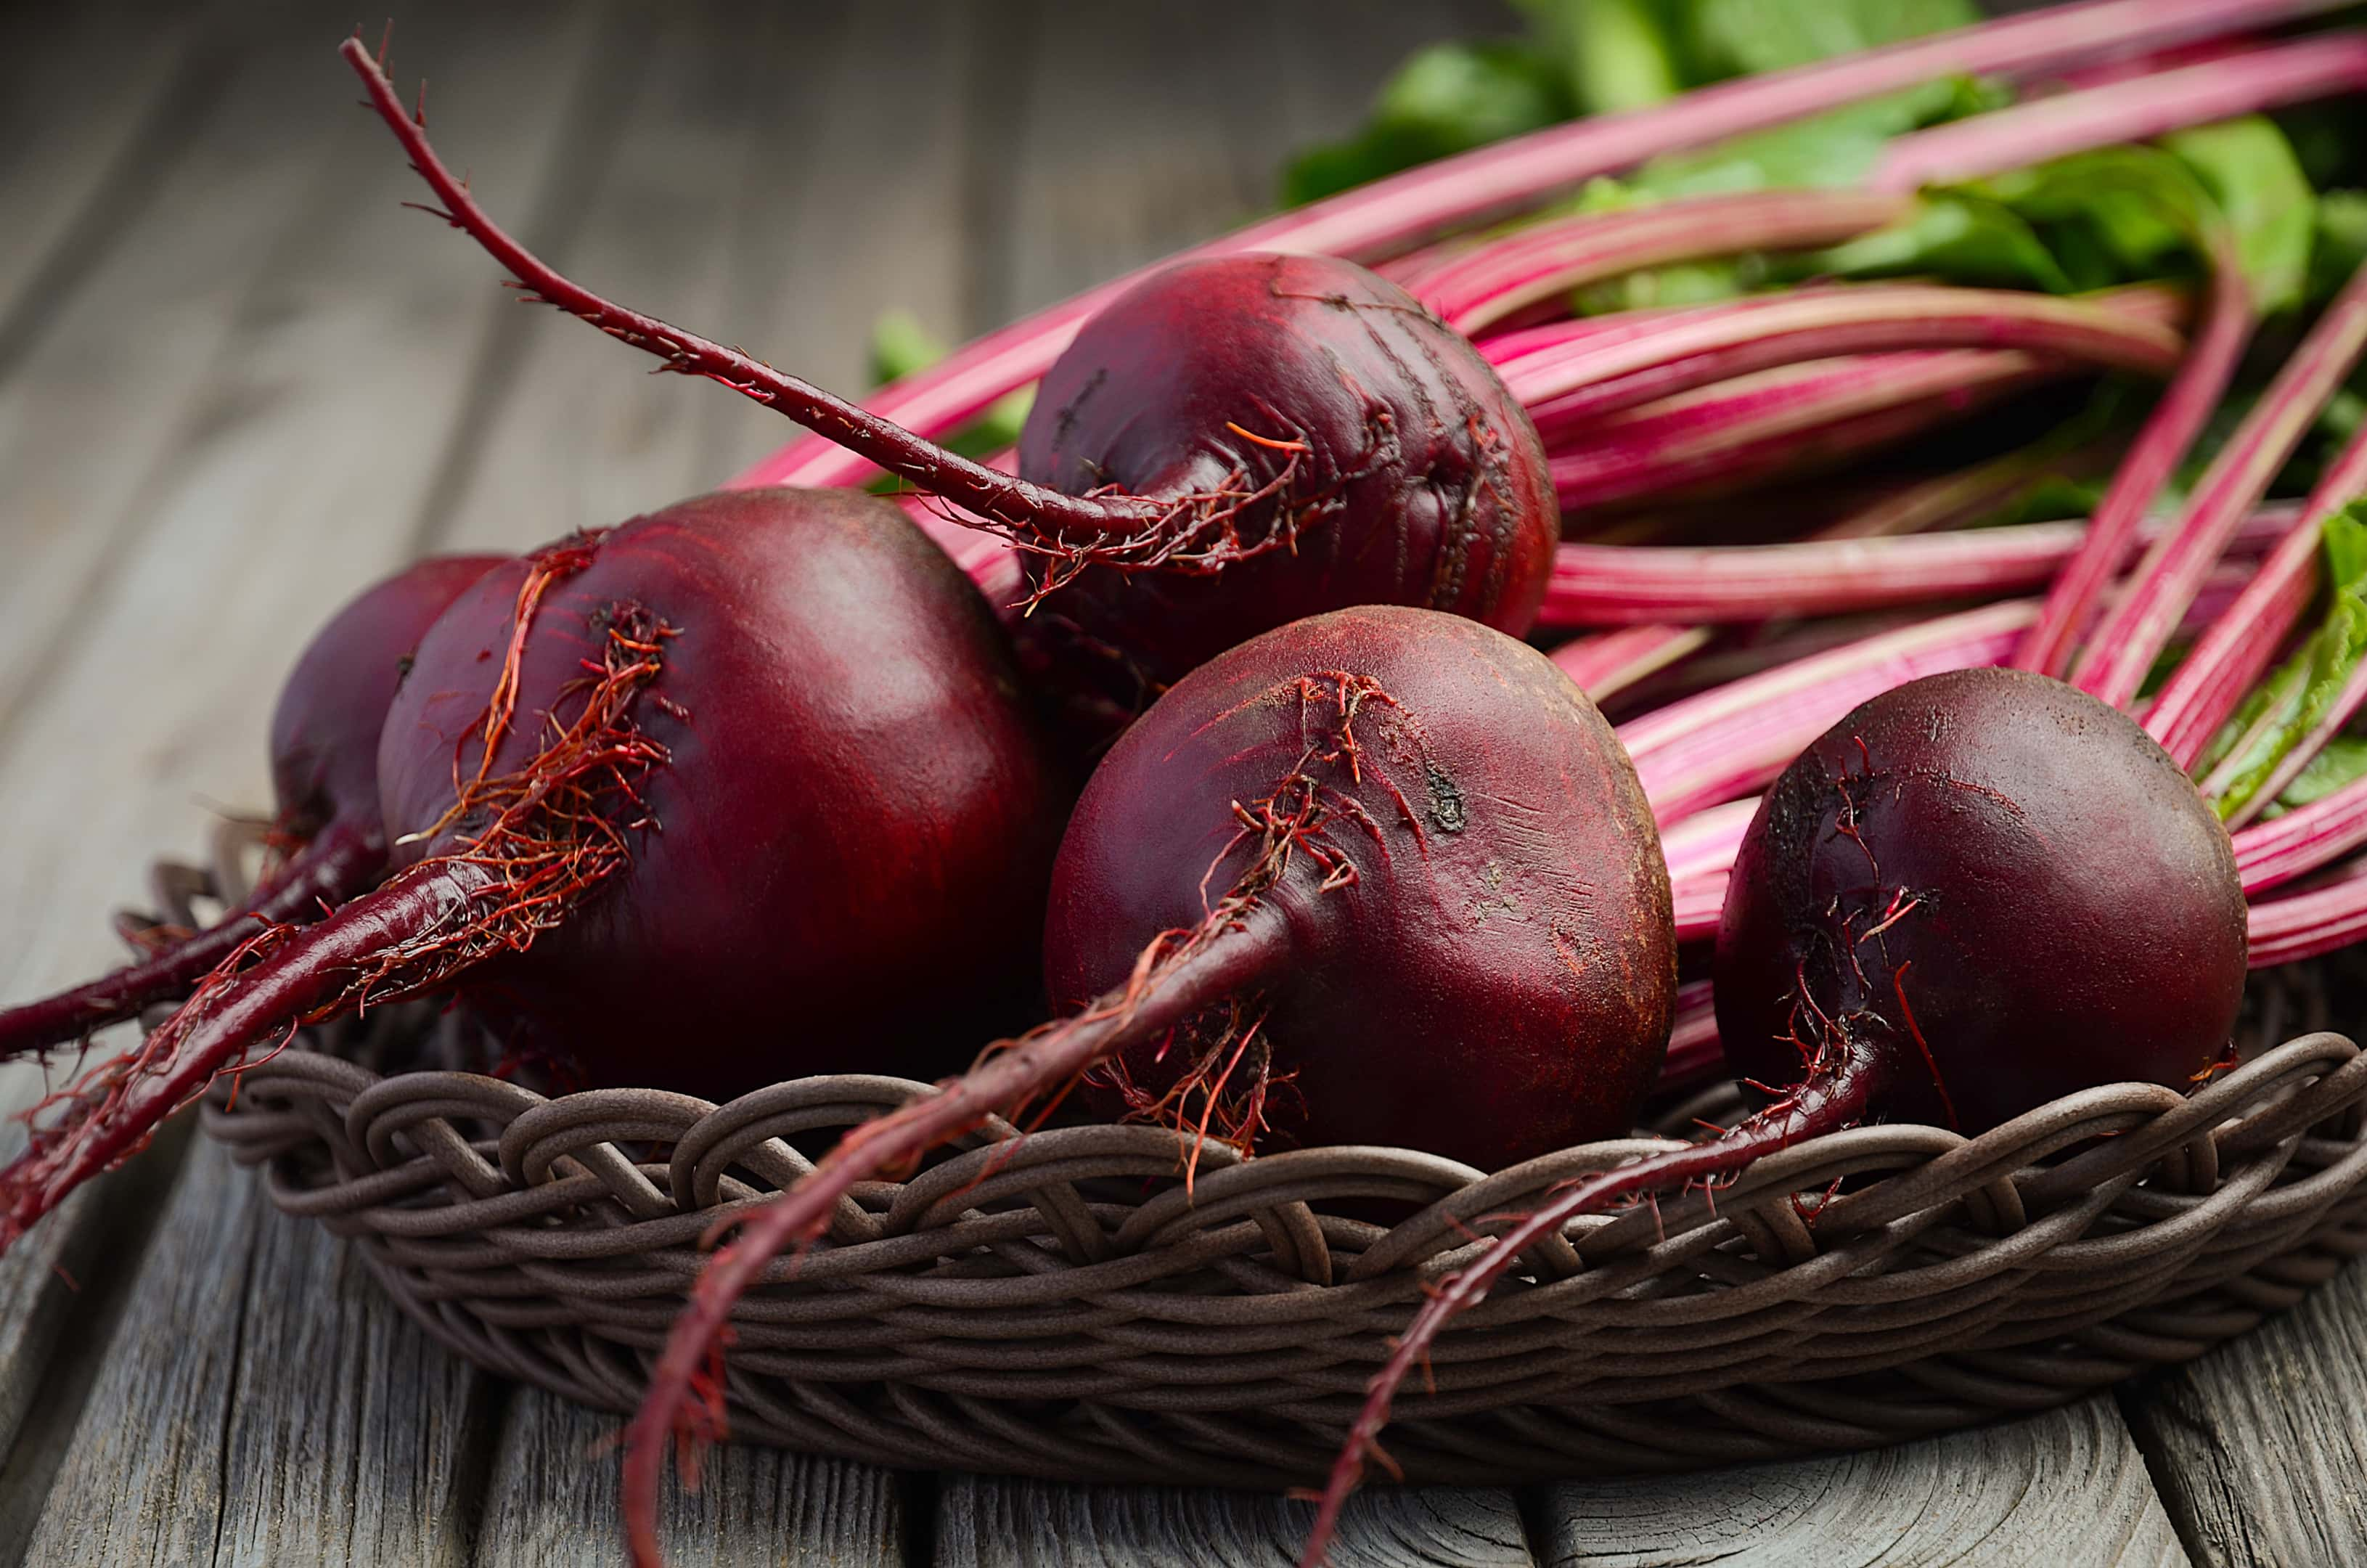 Fresh beets on rustic wooden table